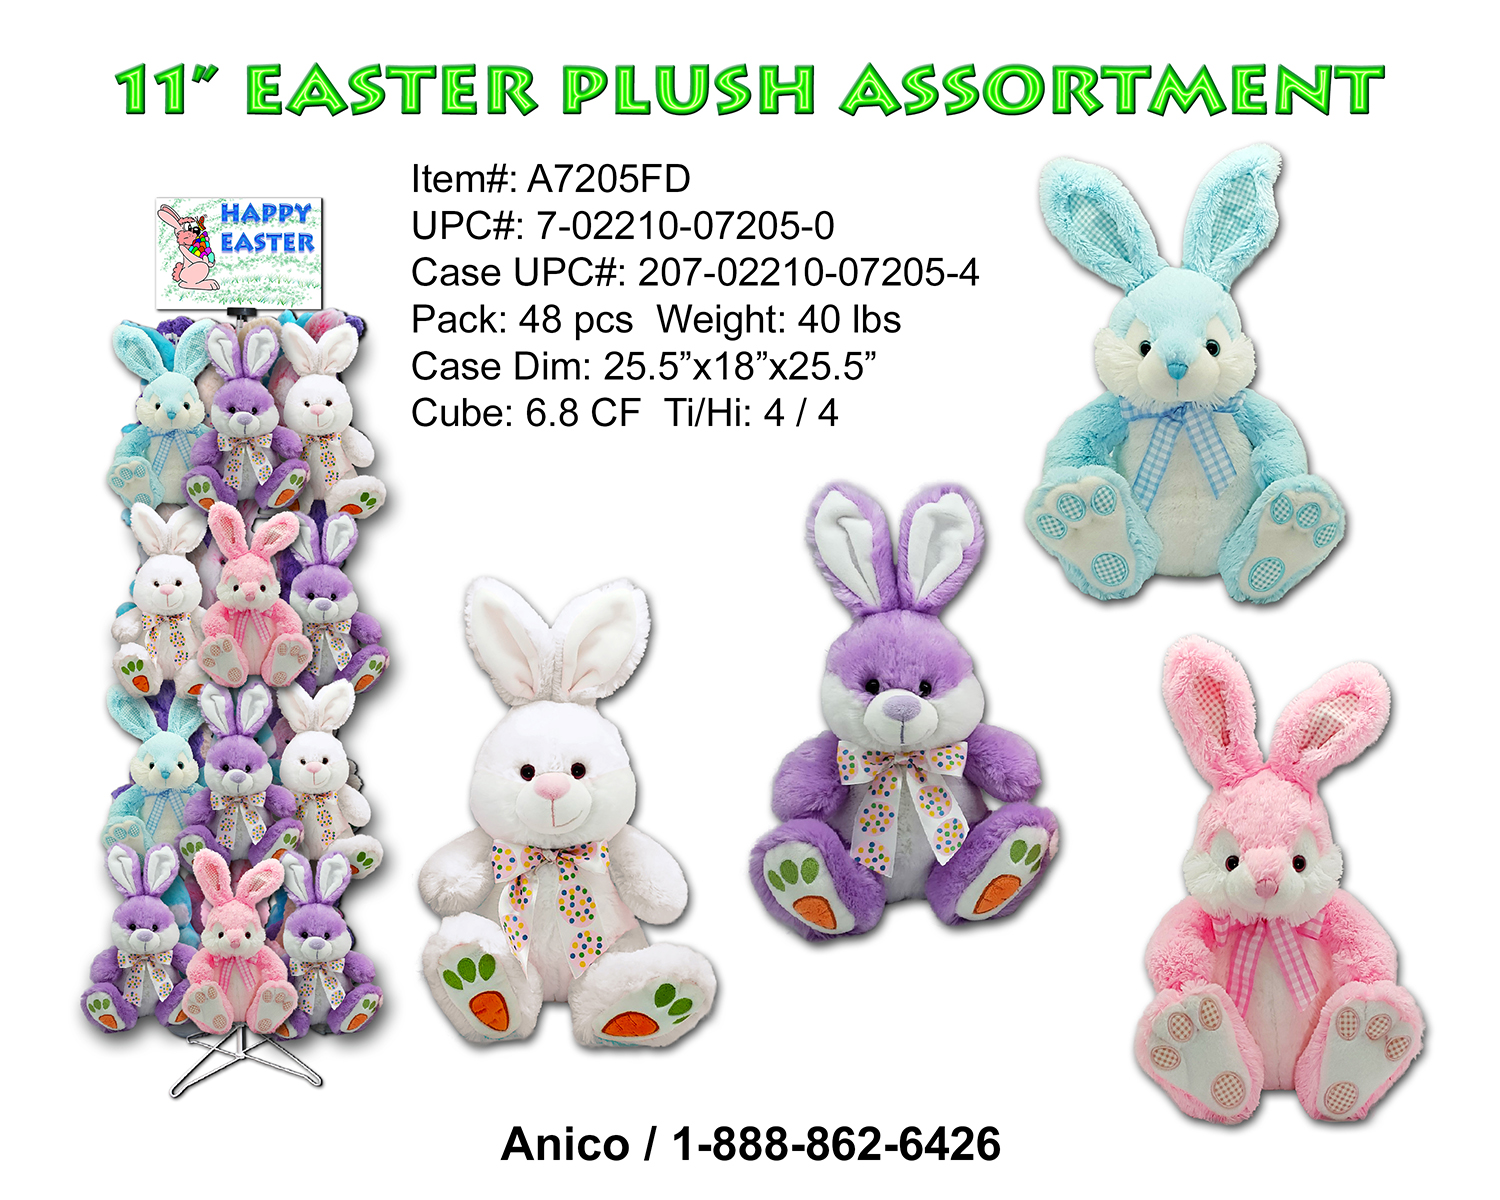 A7205FD Easter Plush Sheet 021419 copy.j